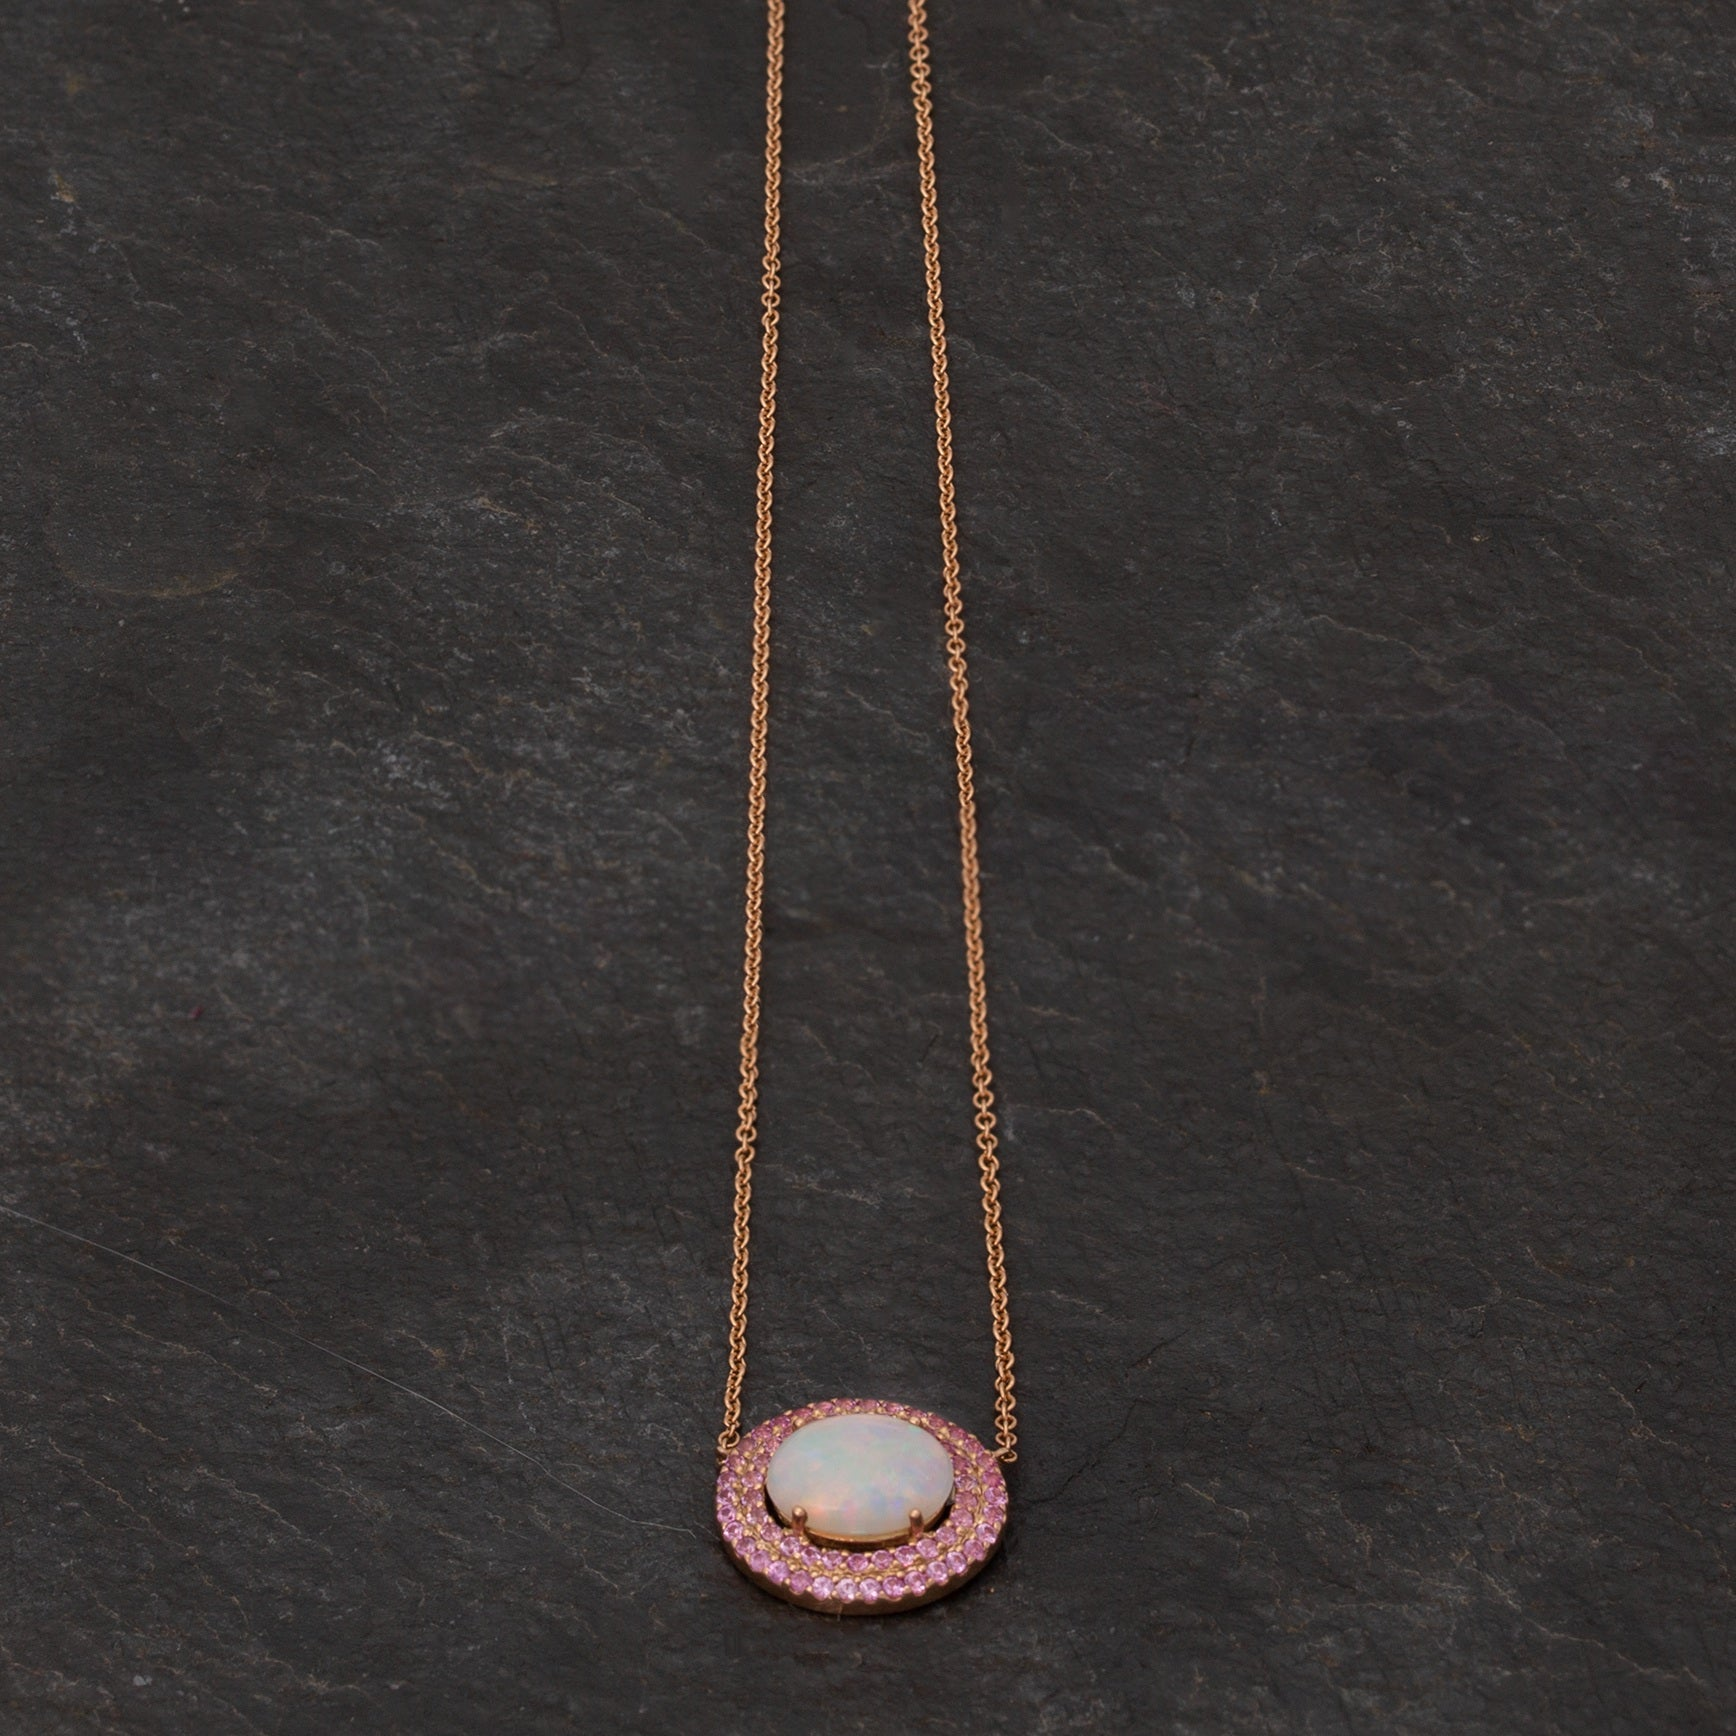 Alexis Jae custom necklace with pink stones and opal